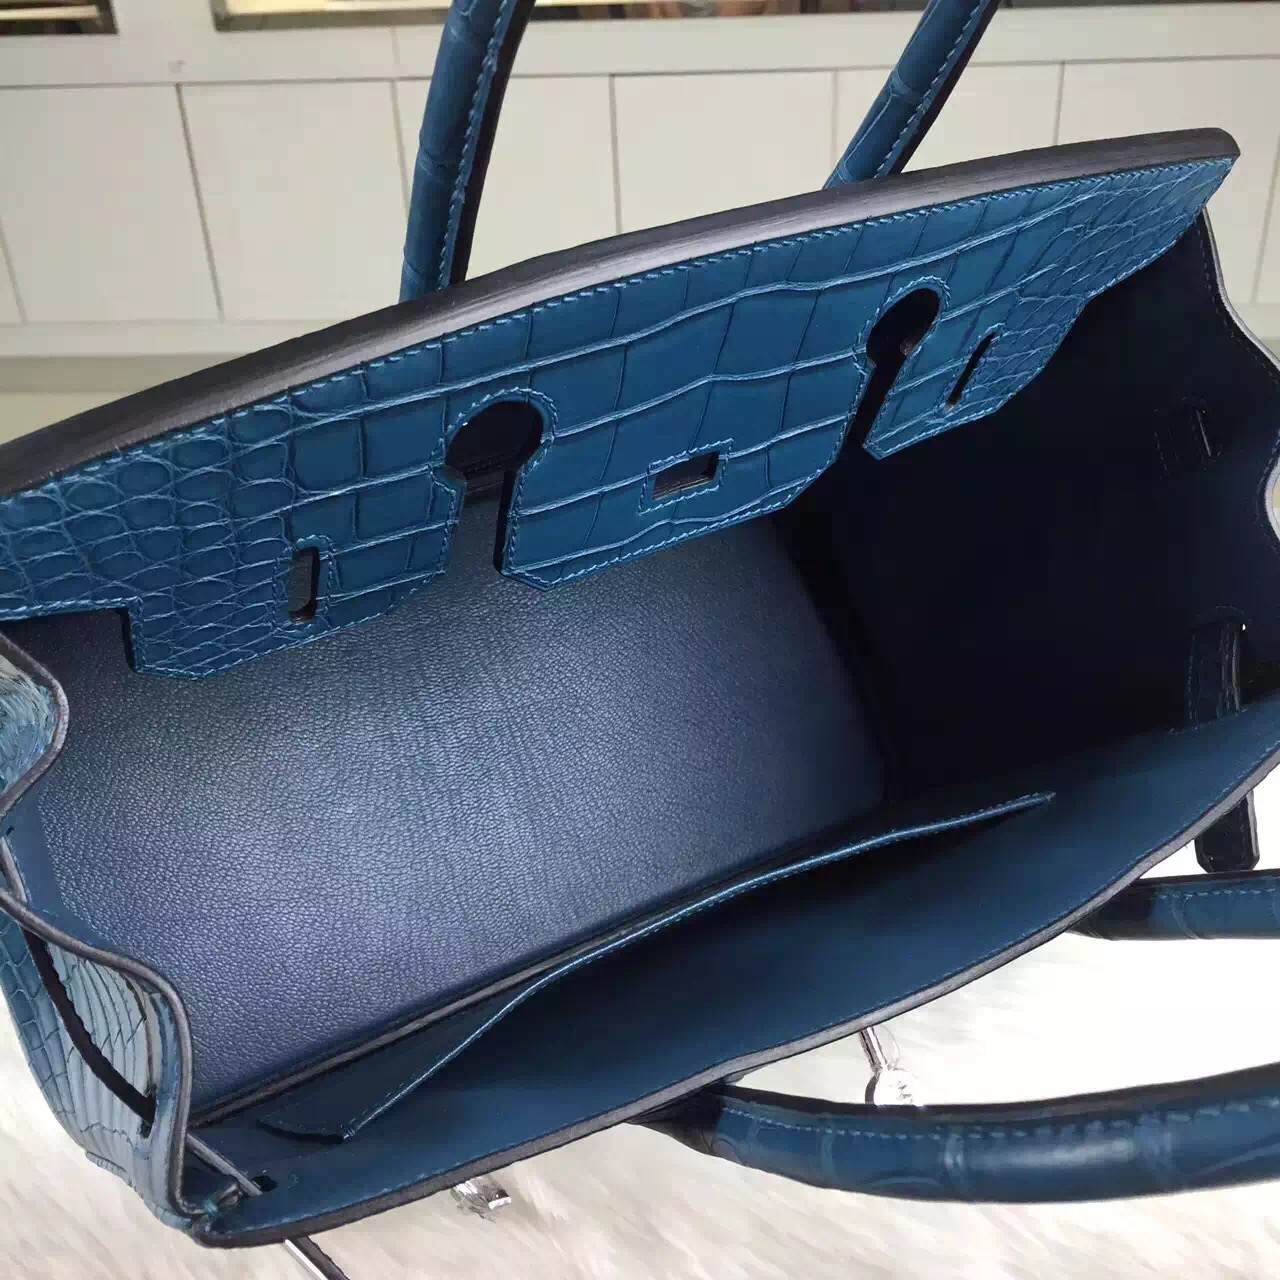 Costom-made Hermes Blue Malta HCP Crocodile Skin Leather Birkin Bag 30cm Silver Hardware